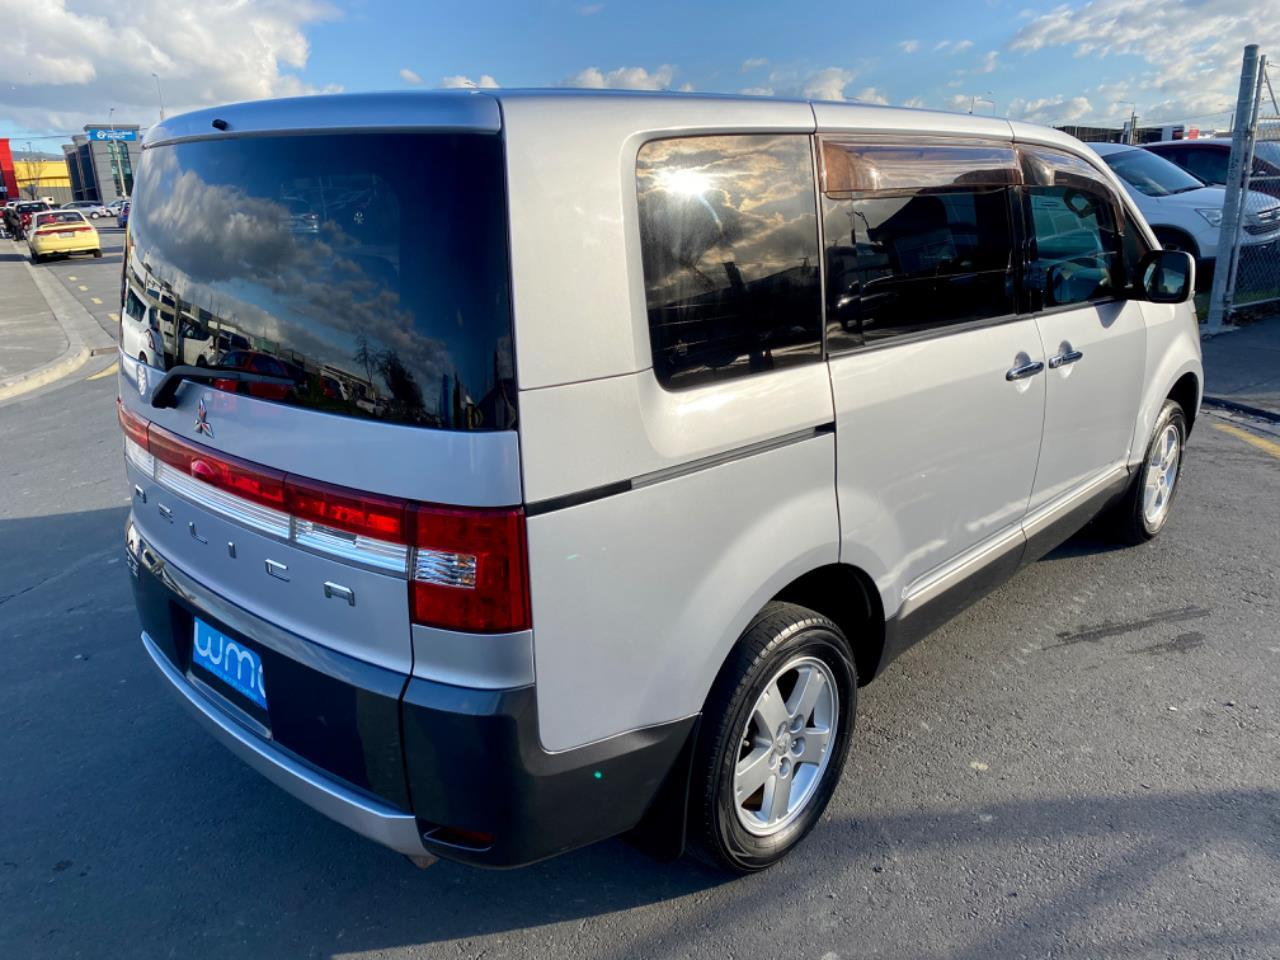 image-6, 2009 Mitsubishi Delica D:5 Exceed 7-Seater at Christchurch